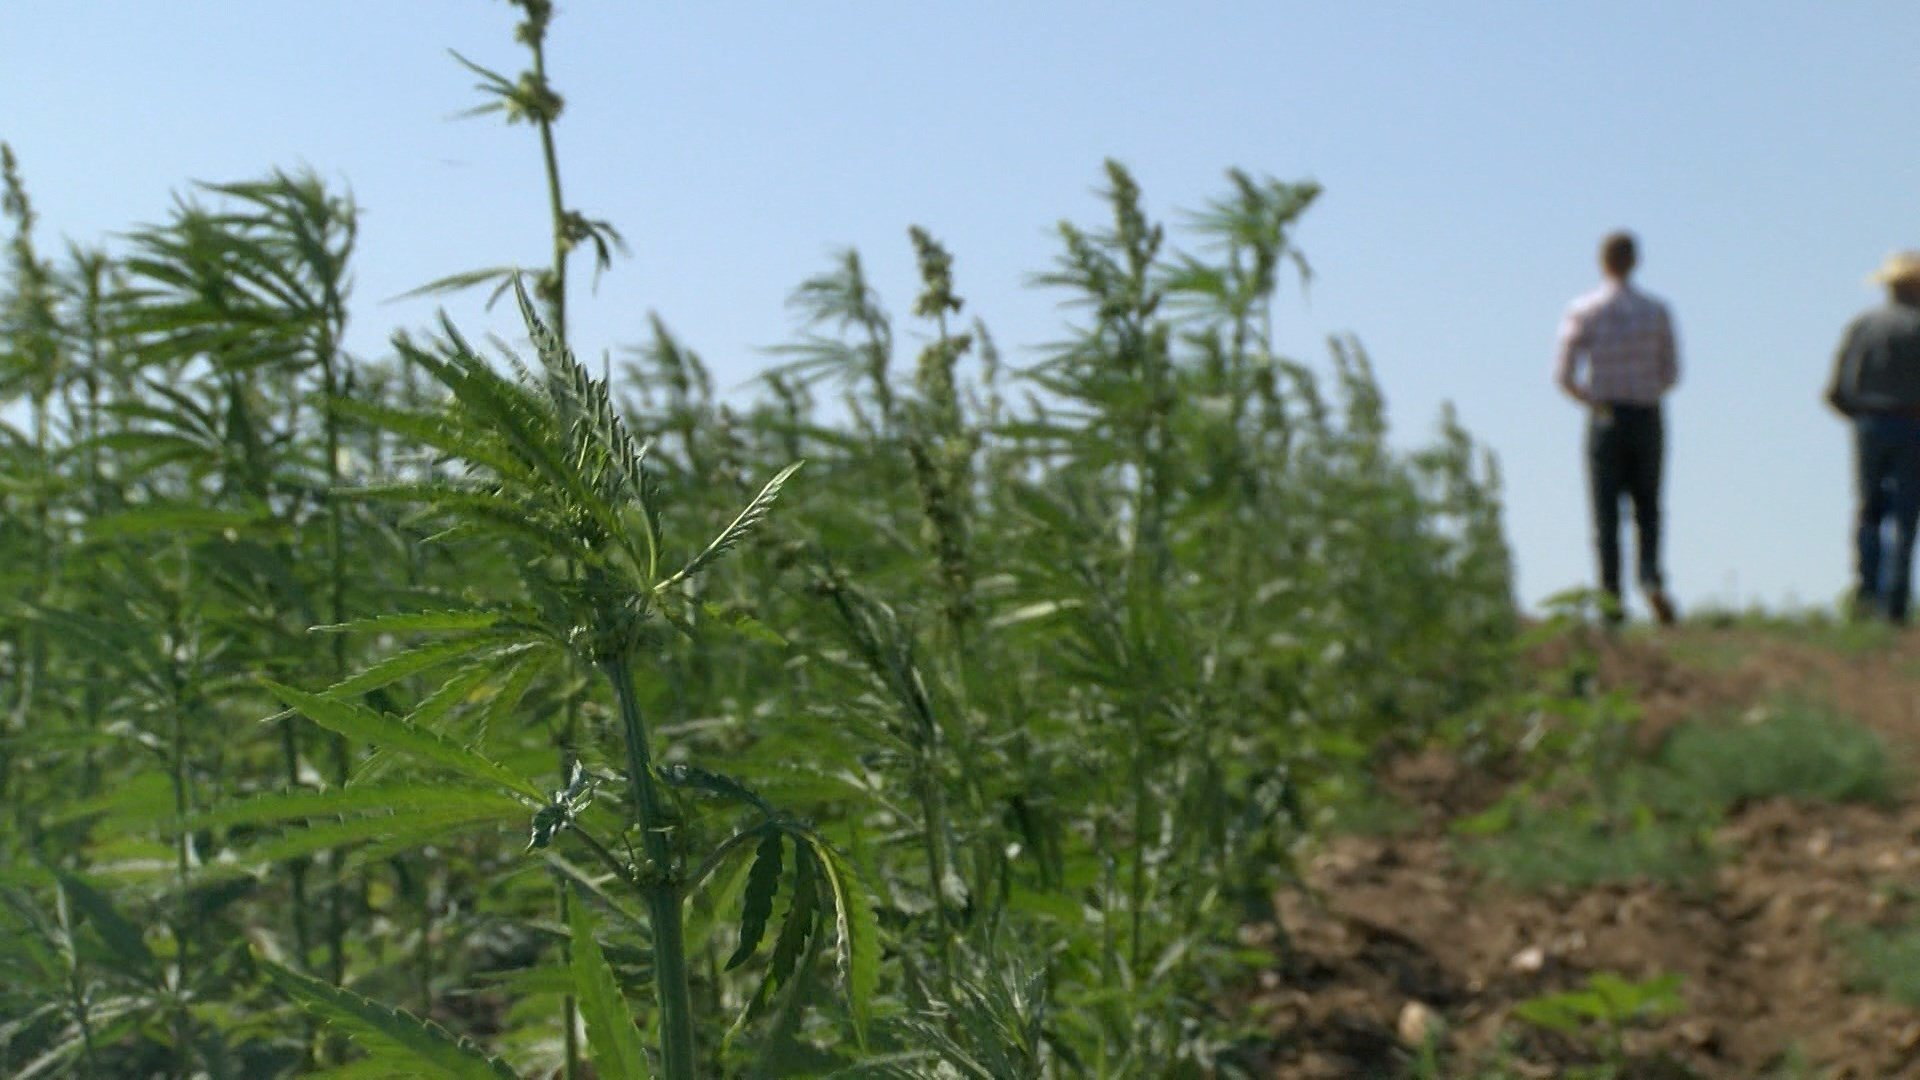 Senate Bill 261 passed in Montana in 2001, allowing the production of hemp as an agricultural crop. But, farming officials say it's taken the past 16 years to get the crop into the ground.